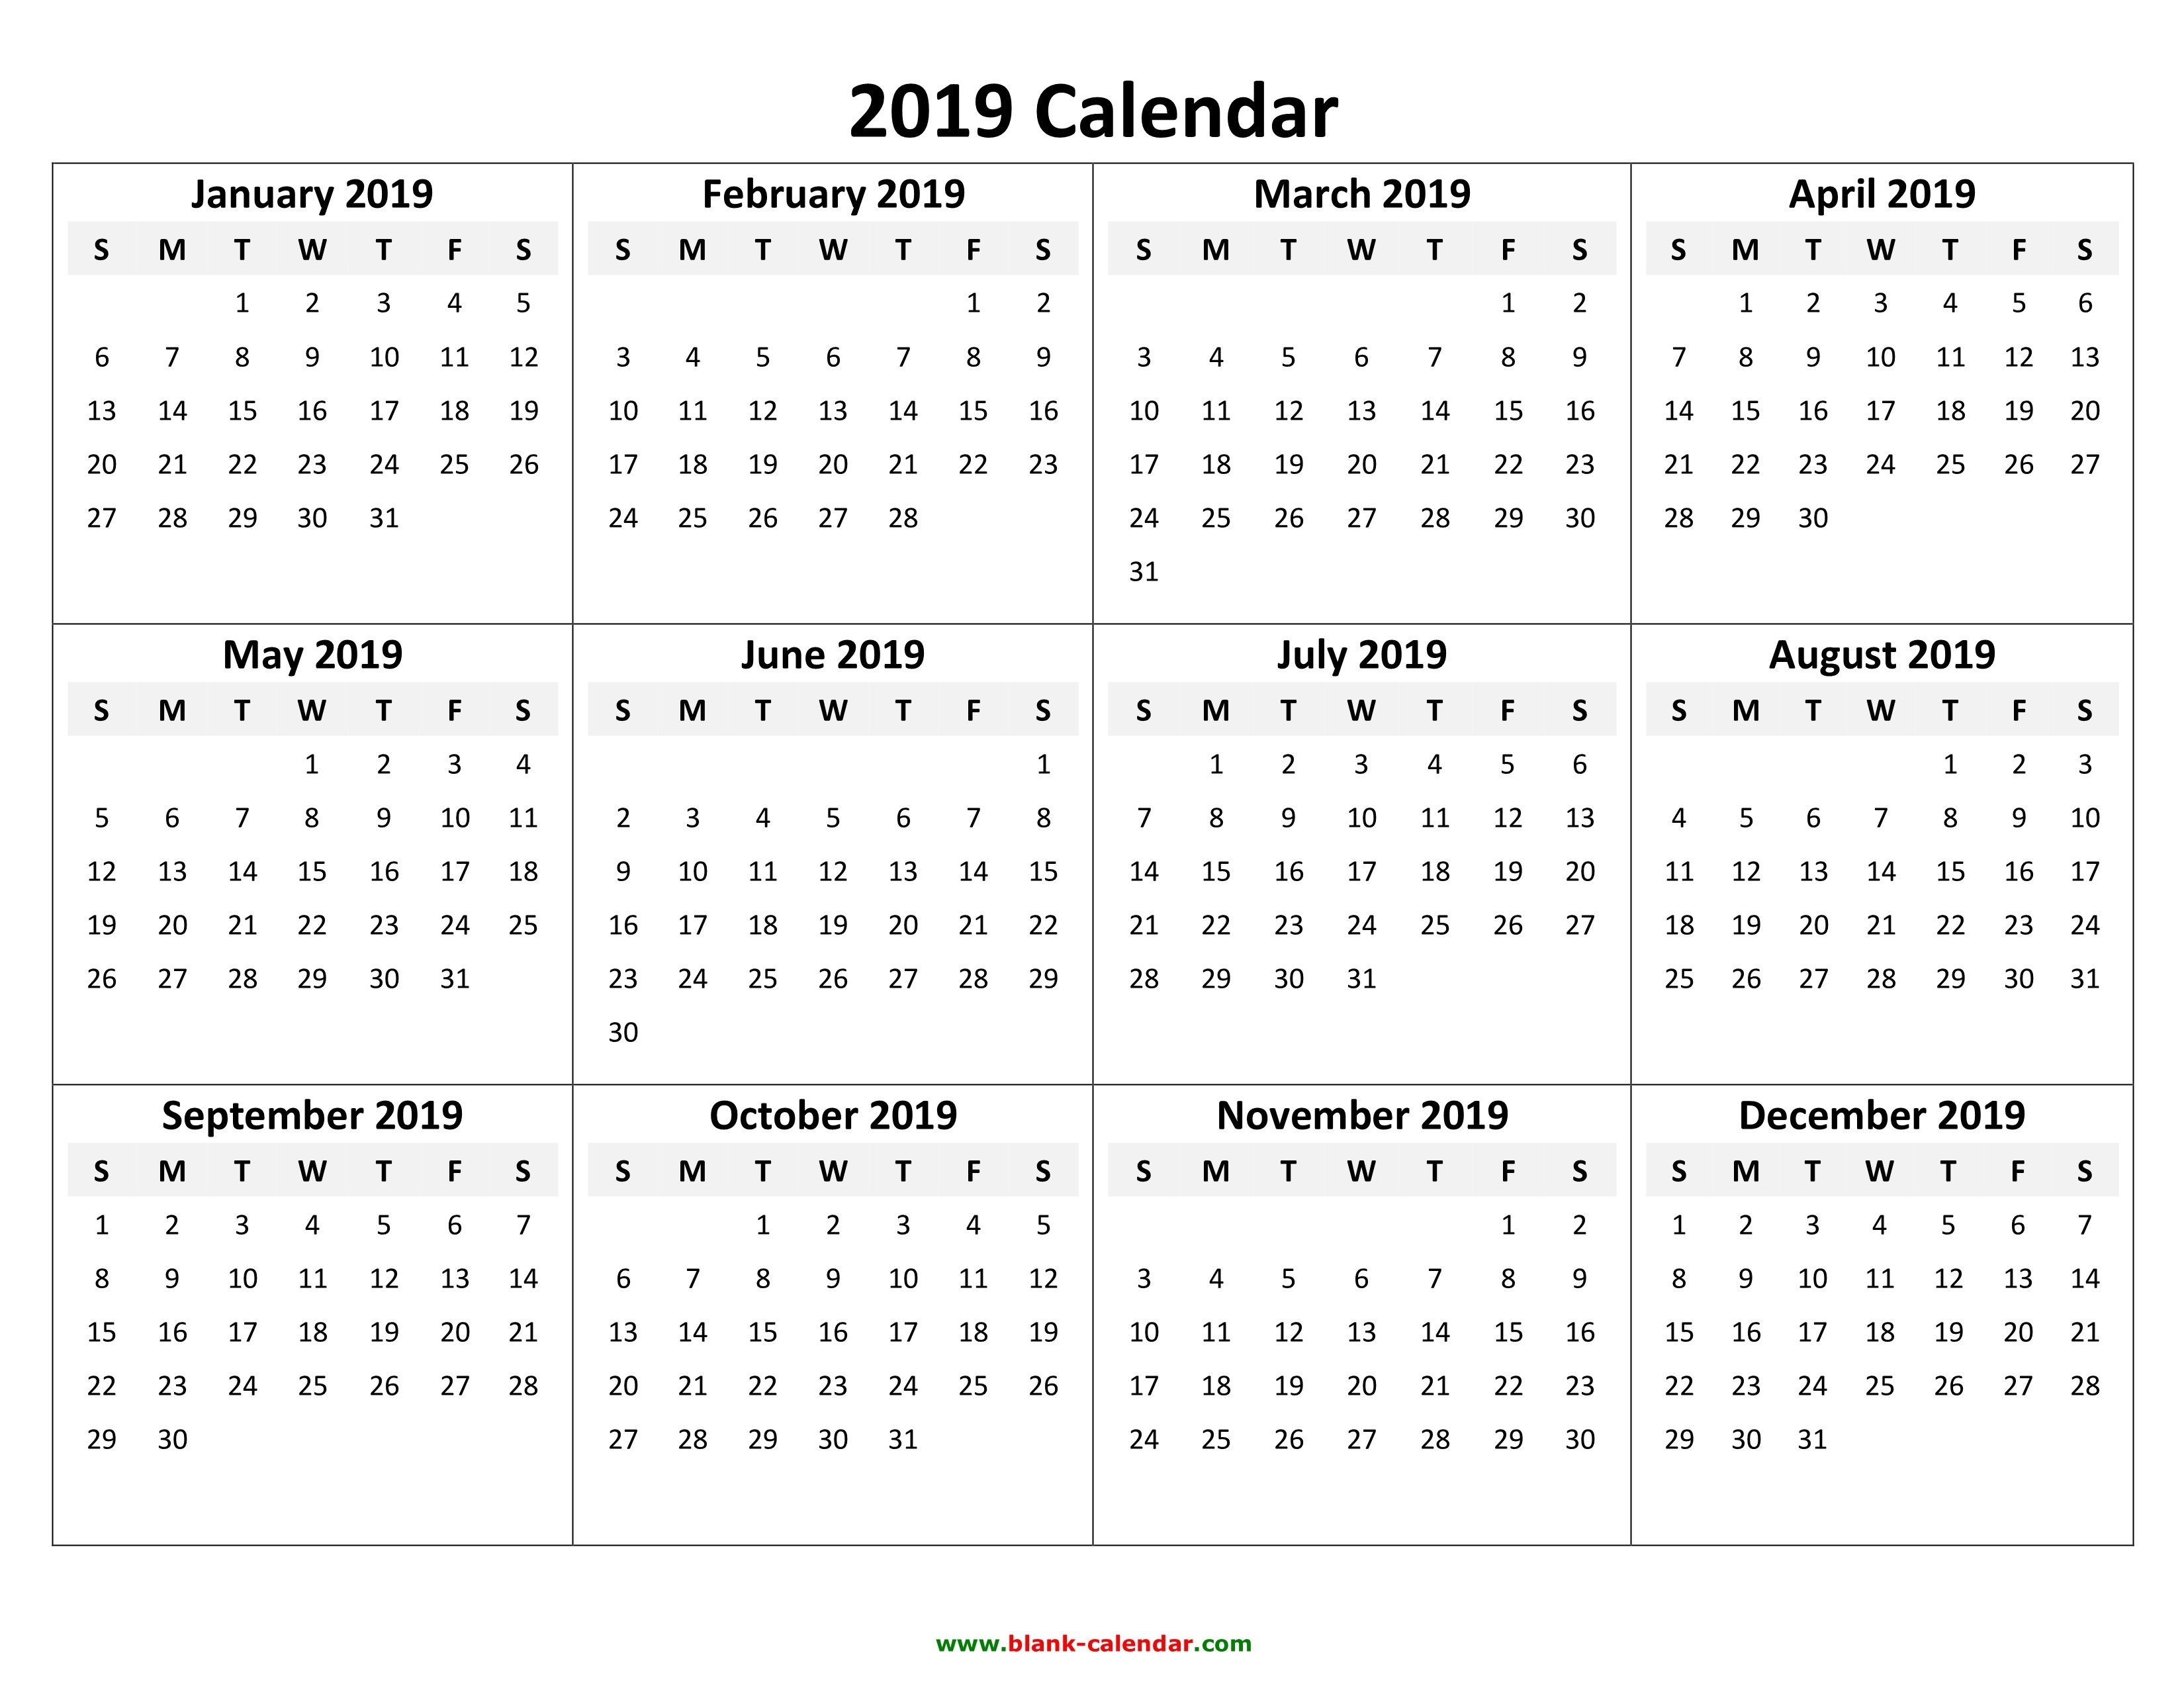 Yearly Calendar 2019 | Free Download And Print 2019 Calendars